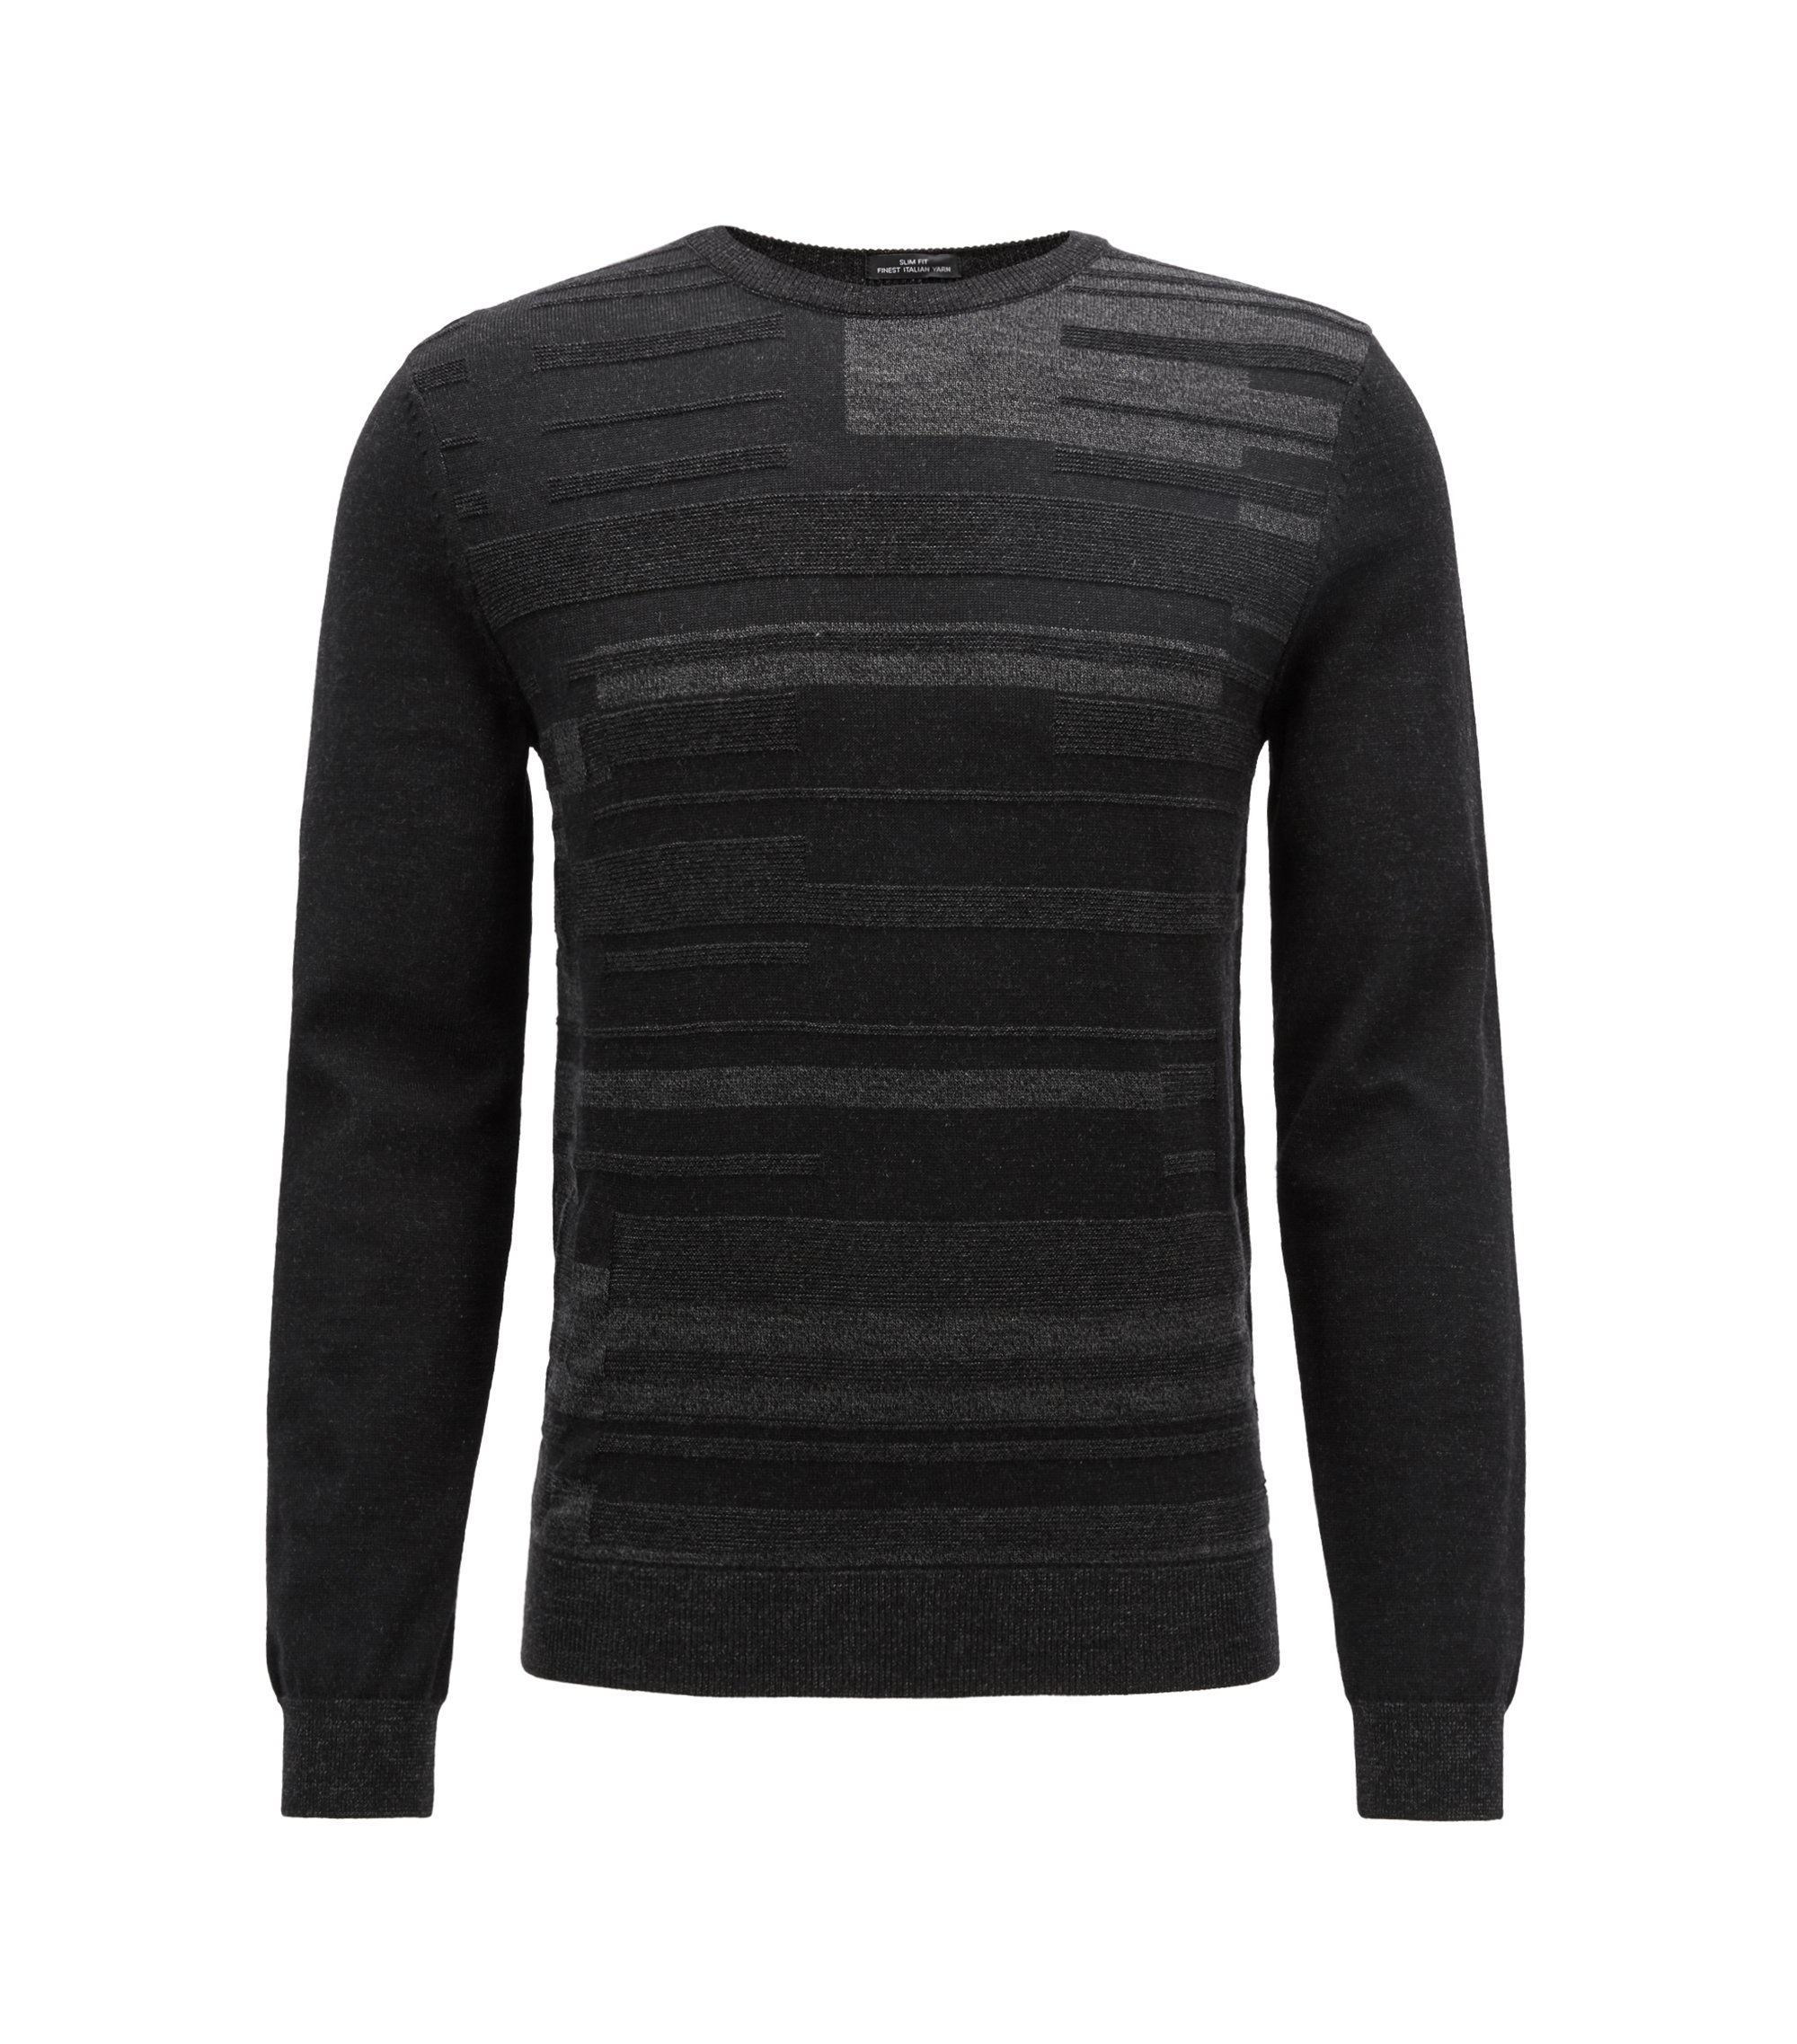 Slim-fit knitted sweater with Bauhaus-inspired melange graphic, Black